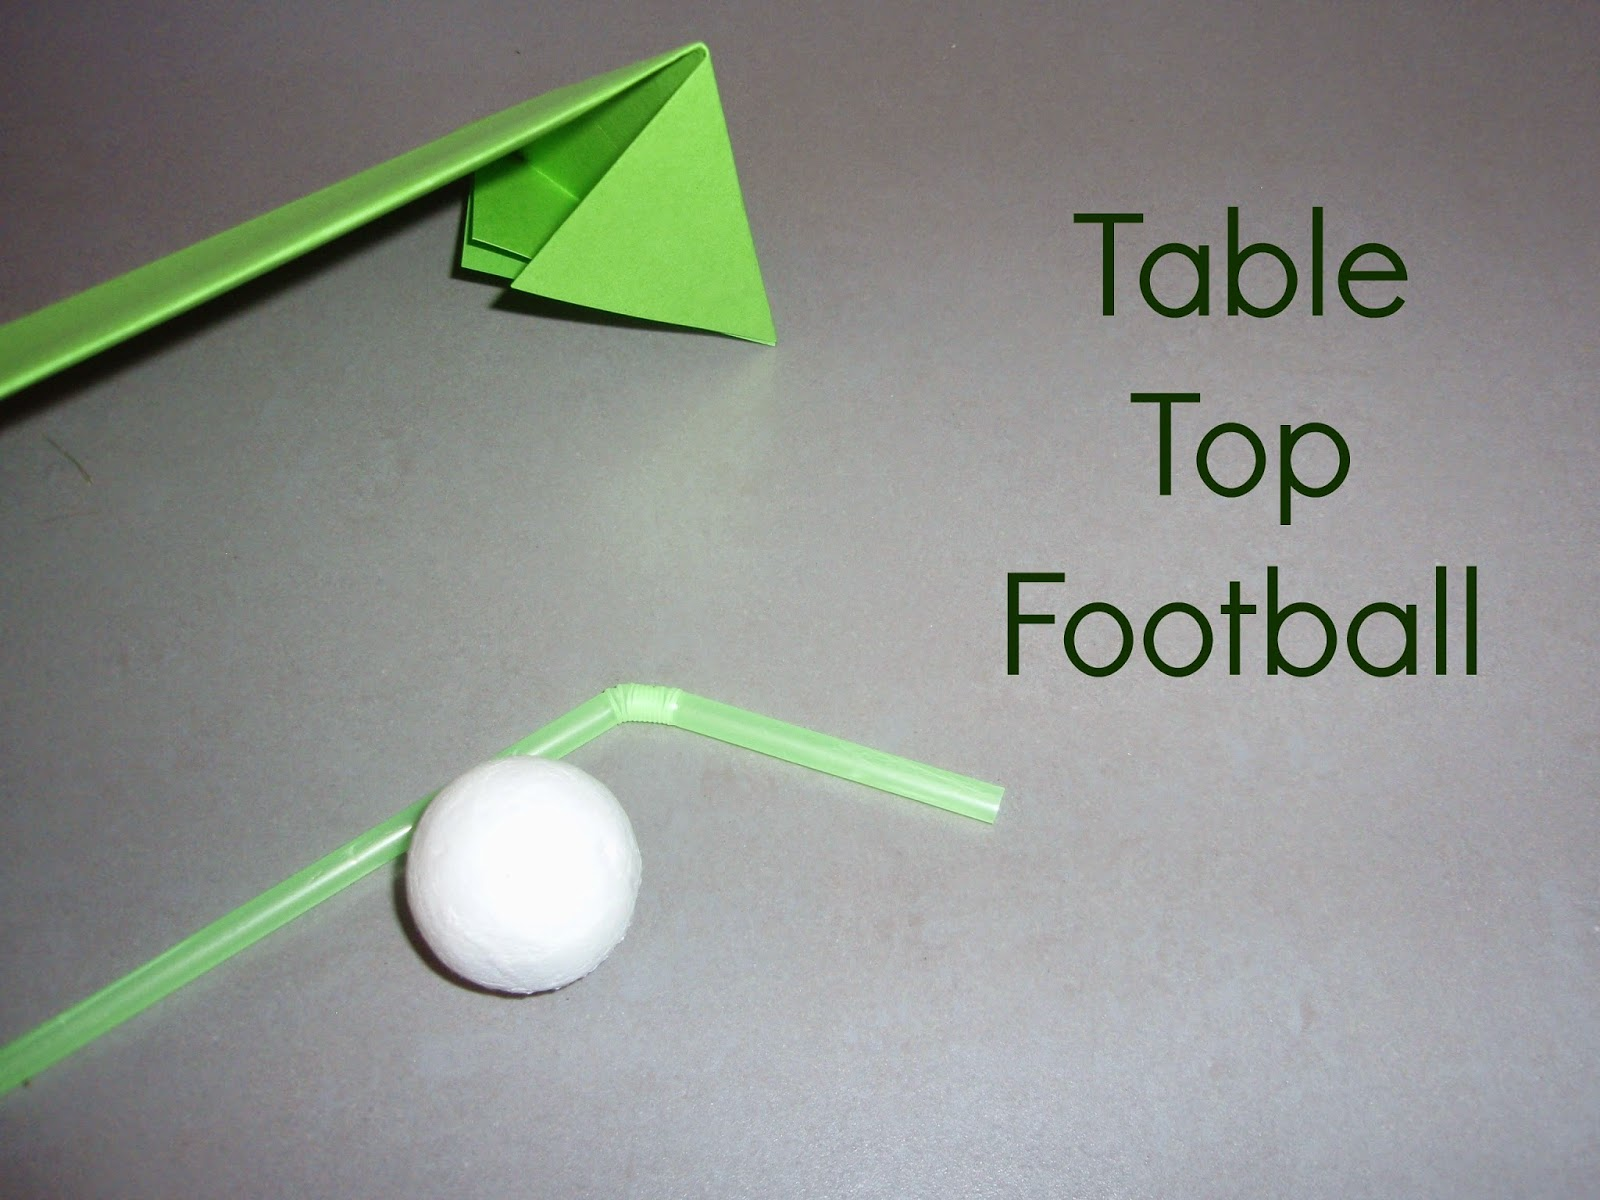 http://mothersmessymadness.blogspot.ch/2014/05/table-top-football.html